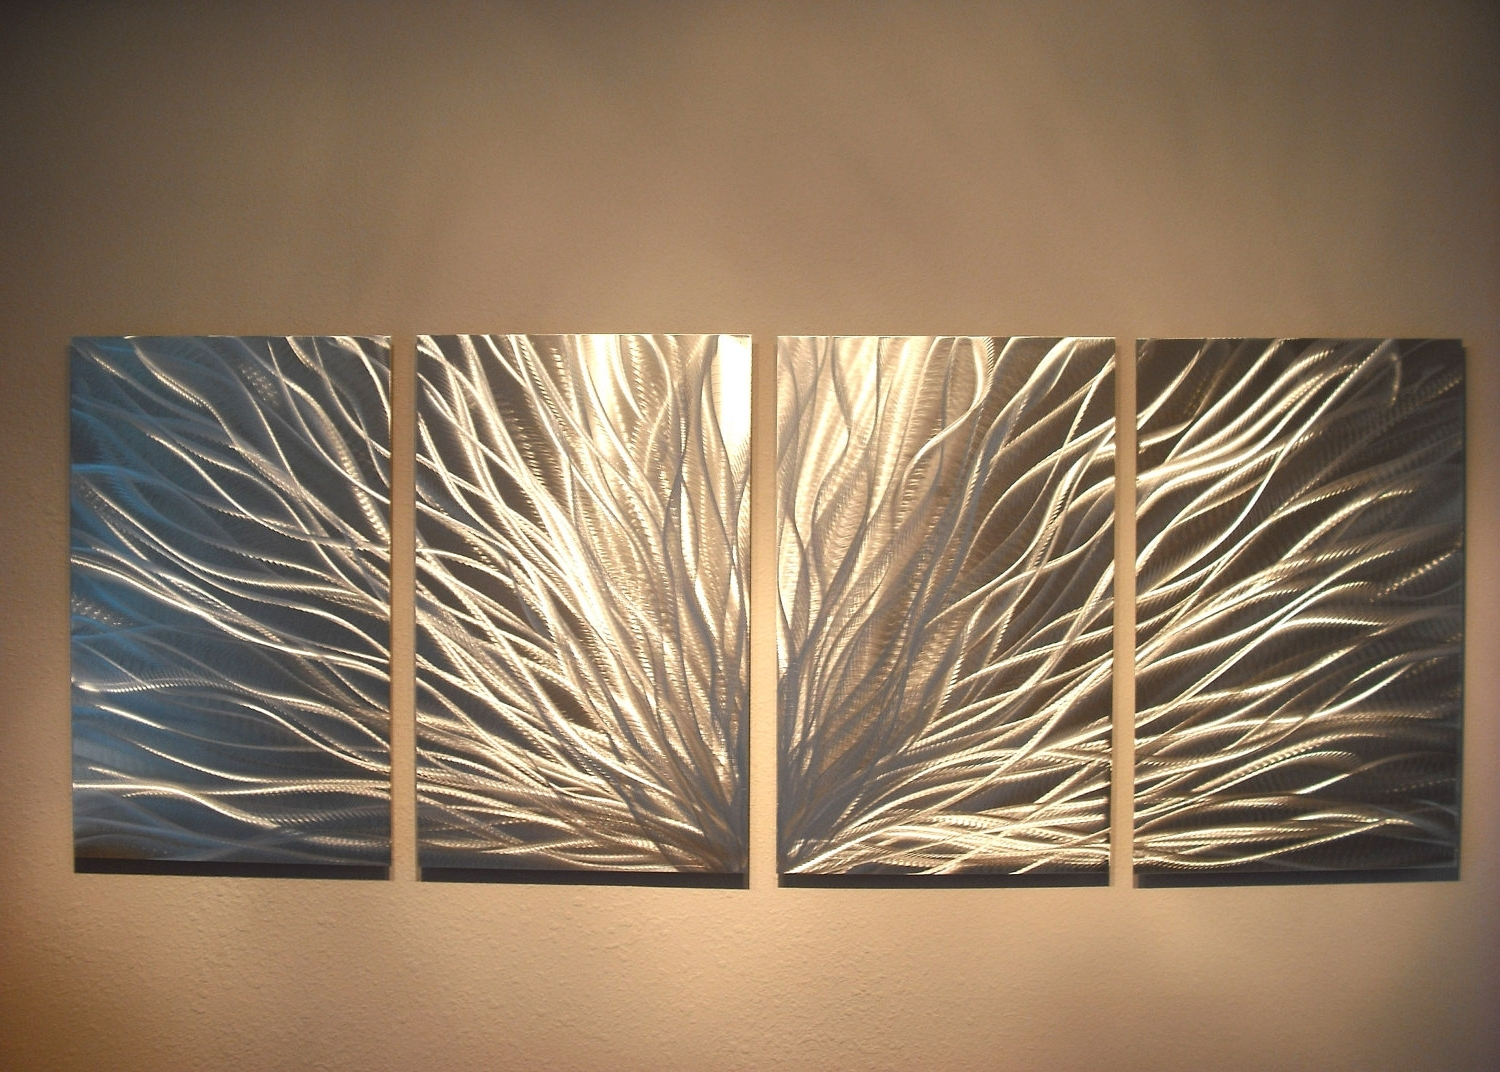 Radiance – Abstract Metal Wall Art Contemporary Modern Decor In Widely Used Large Modern Fabric Wall Art (View 12 of 15)